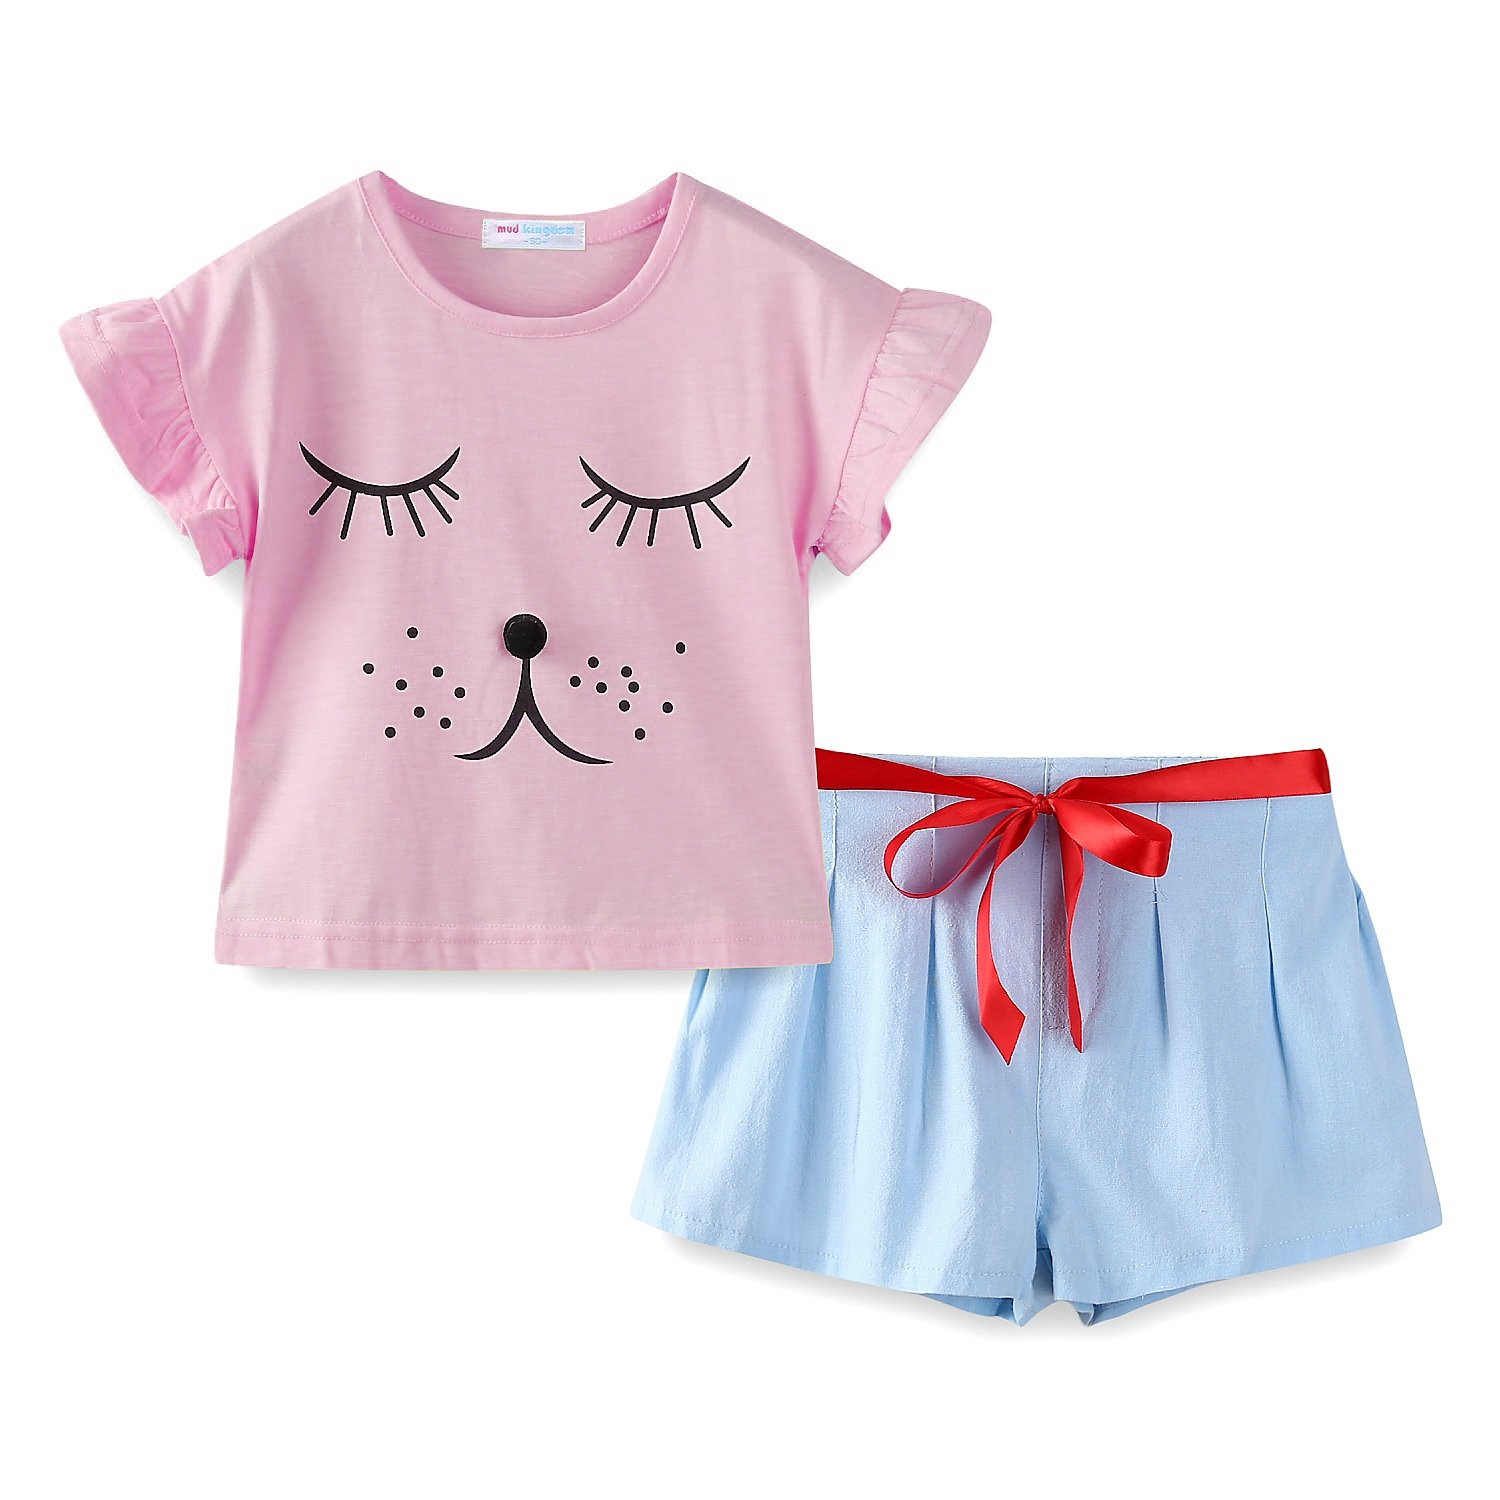 Mud Kingdom Cute Girls Clothes Size 7/8 Pink Funny Puppy